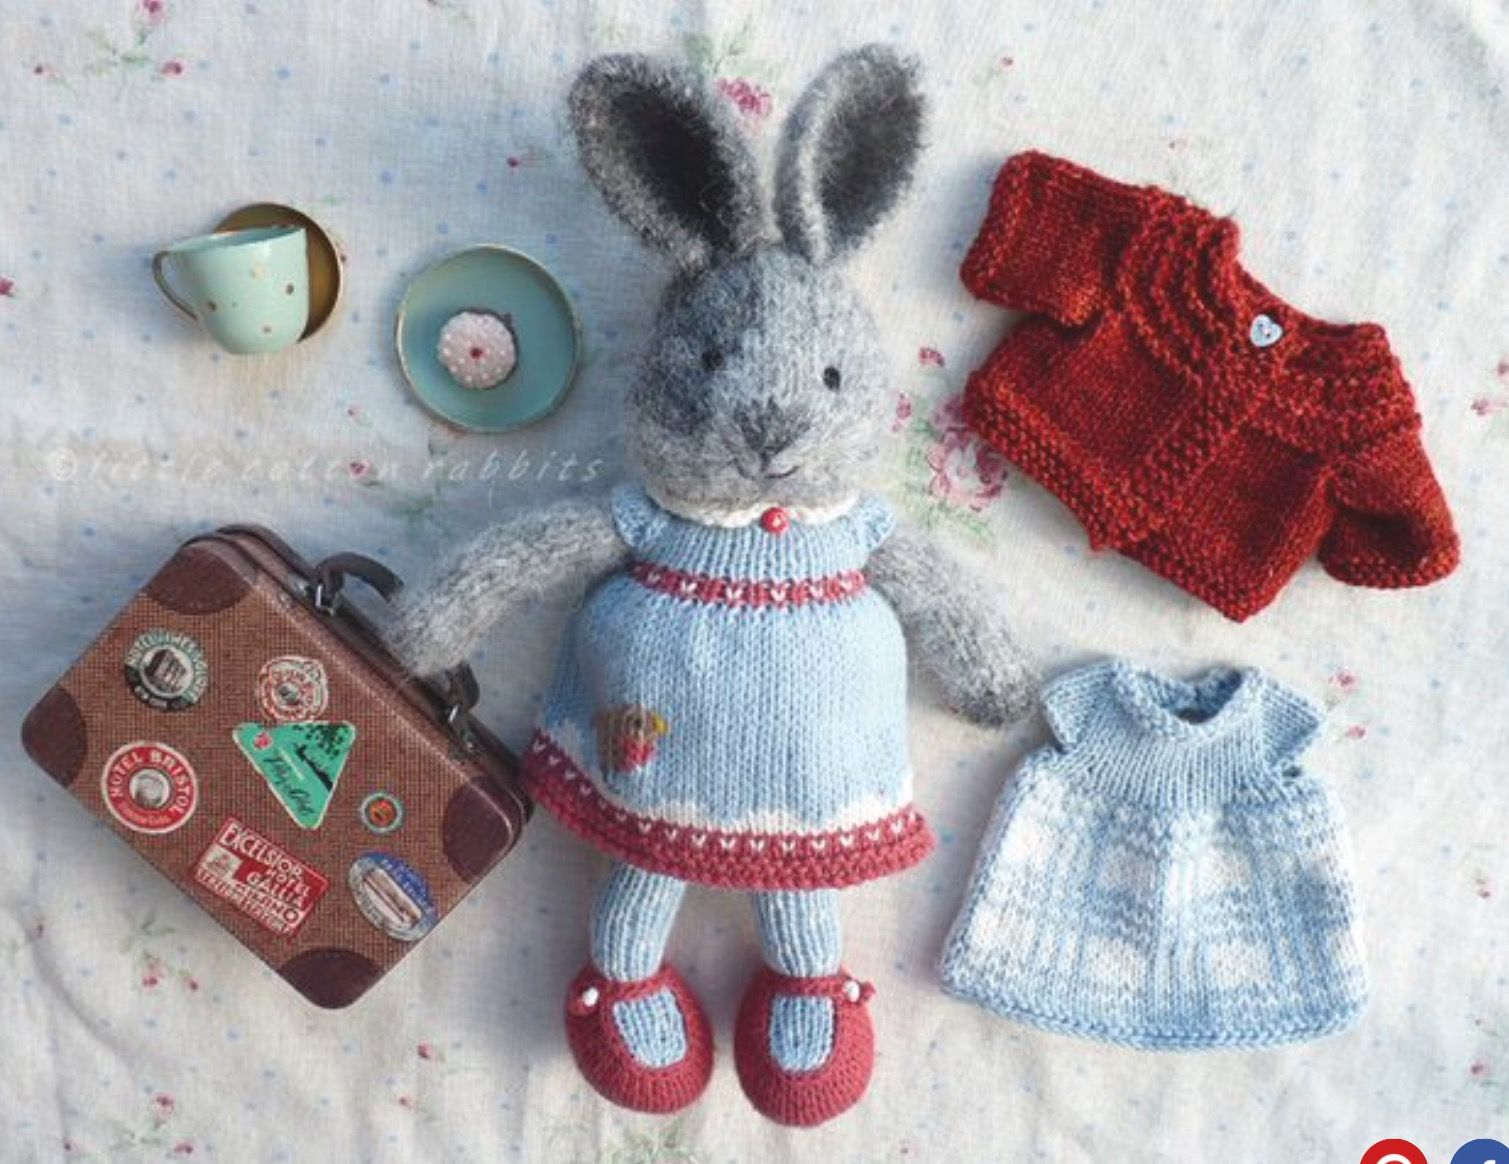 Pin de Julie Crowl en Bunnies | Pinterest